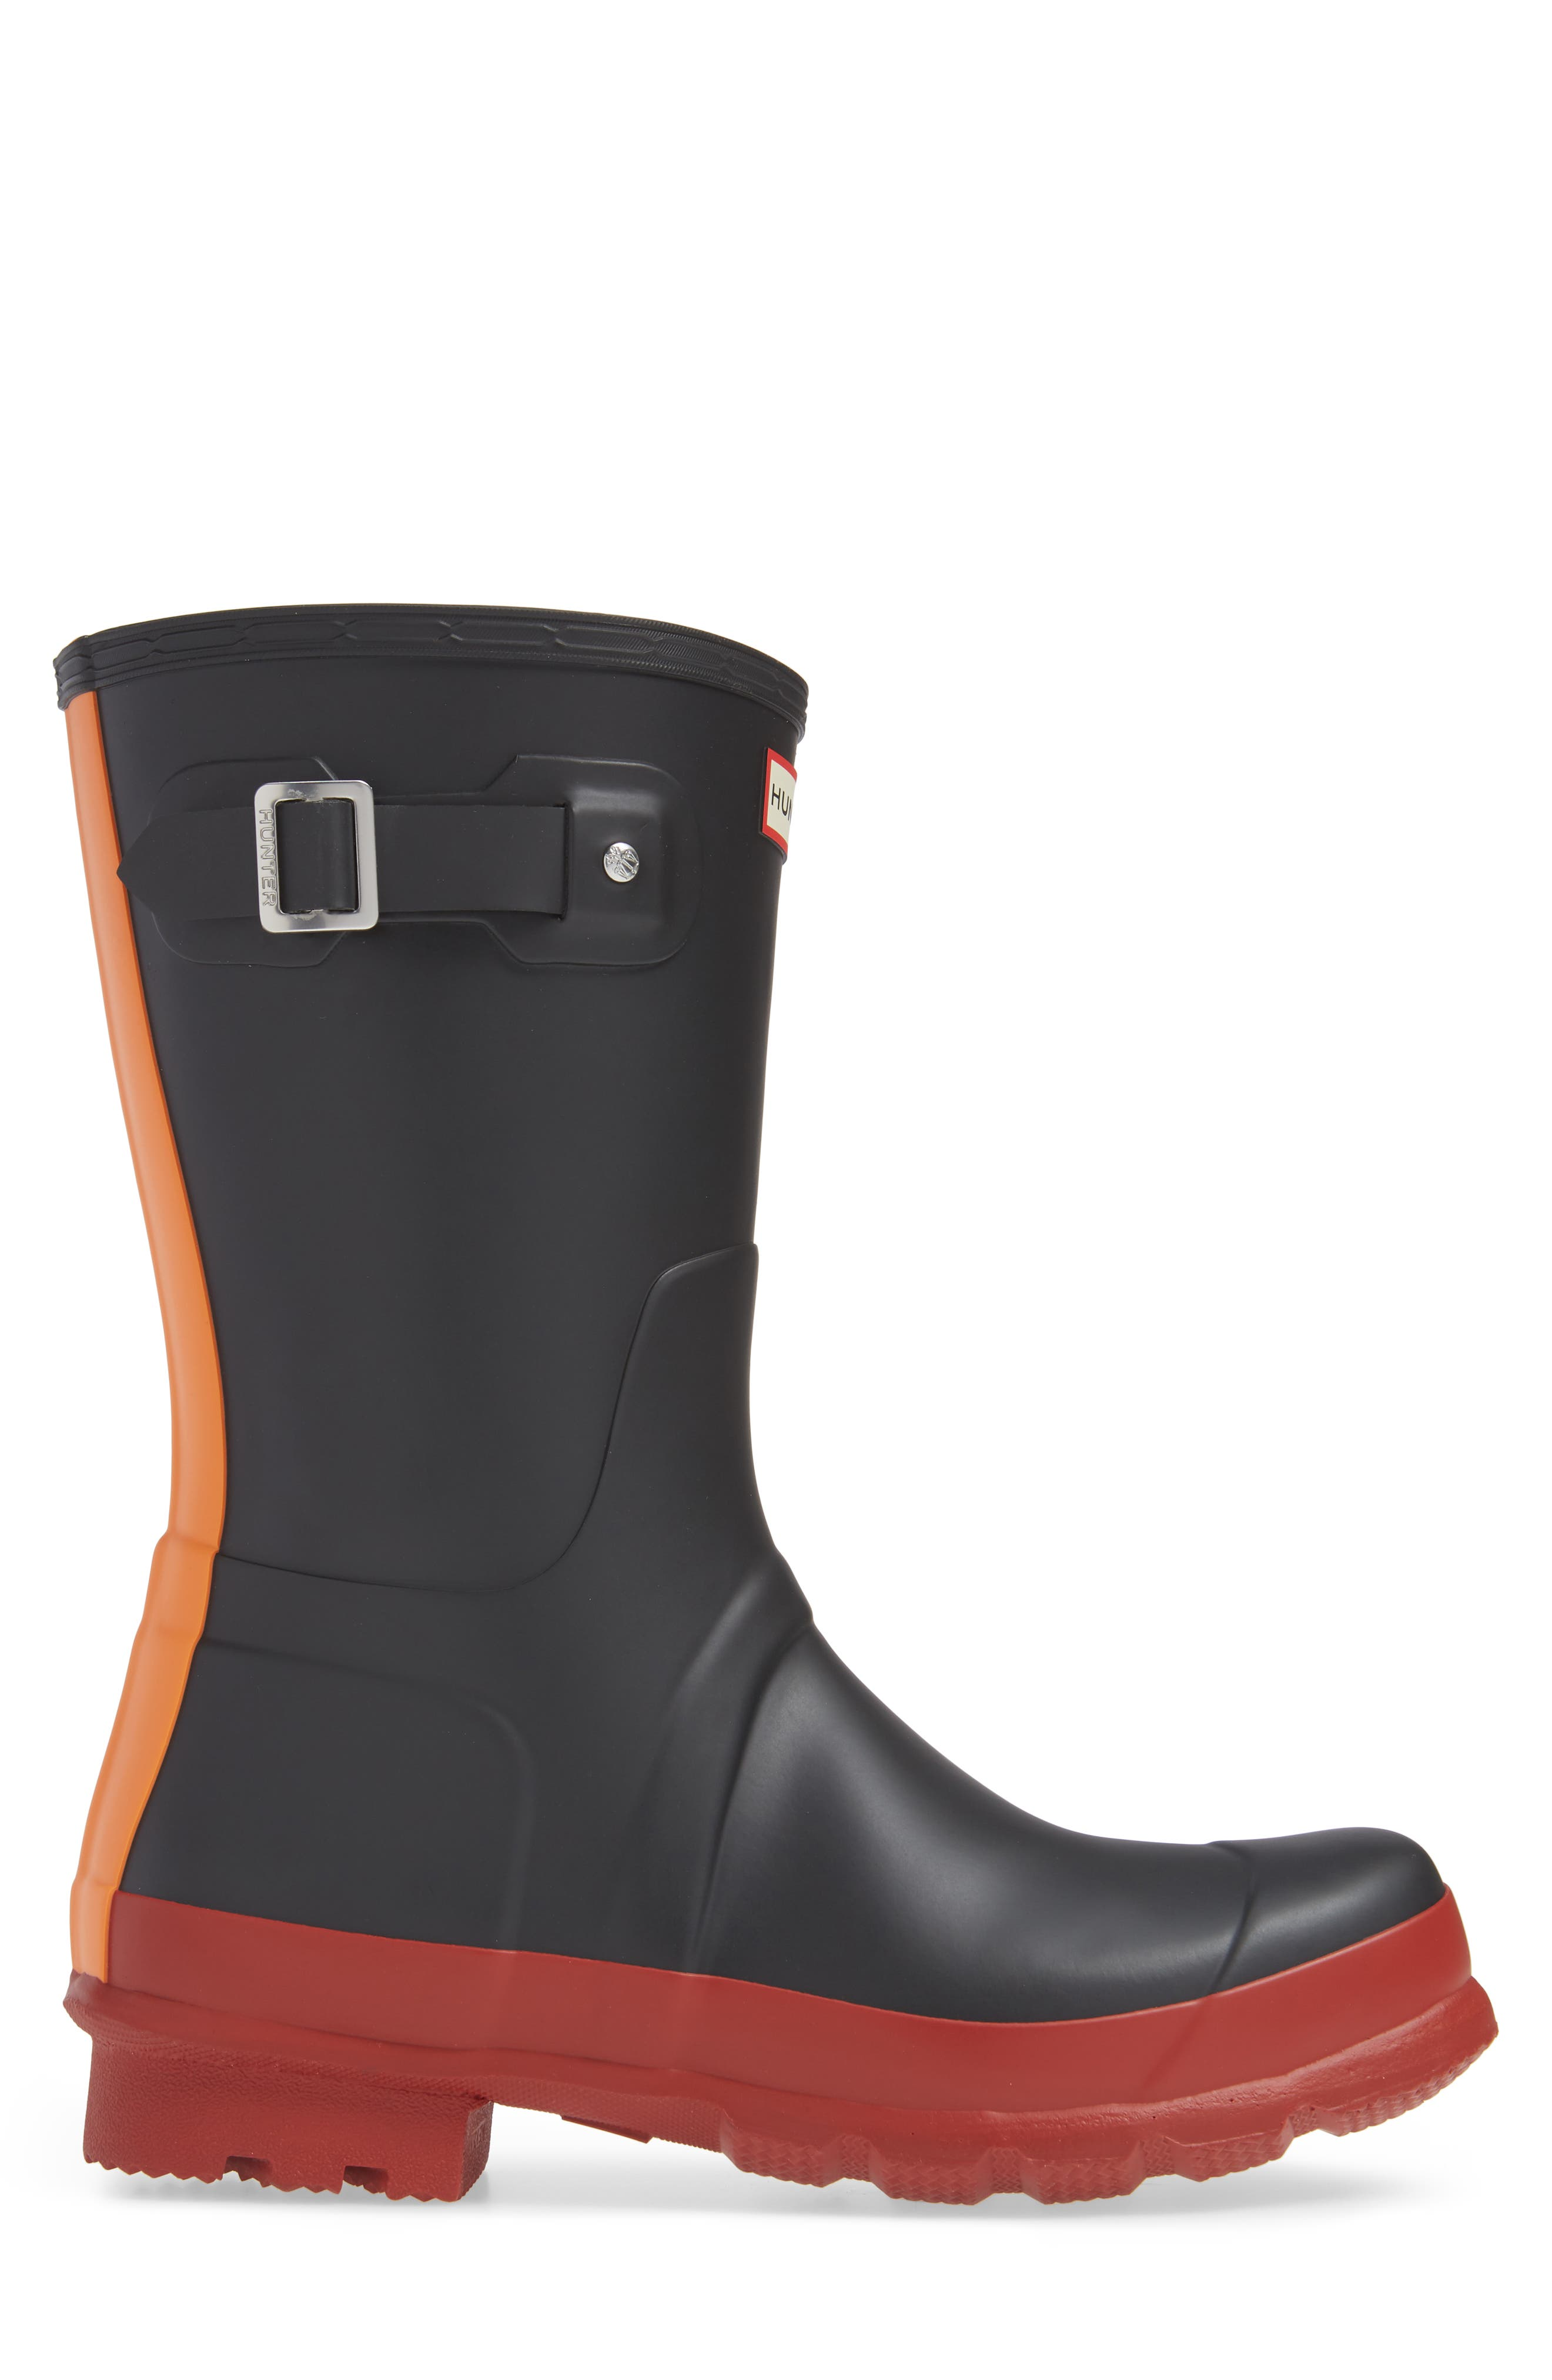 Waterproof Original Boot,                             Alternate thumbnail 3, color,                             BLACK/ RED COLOR BLOCK